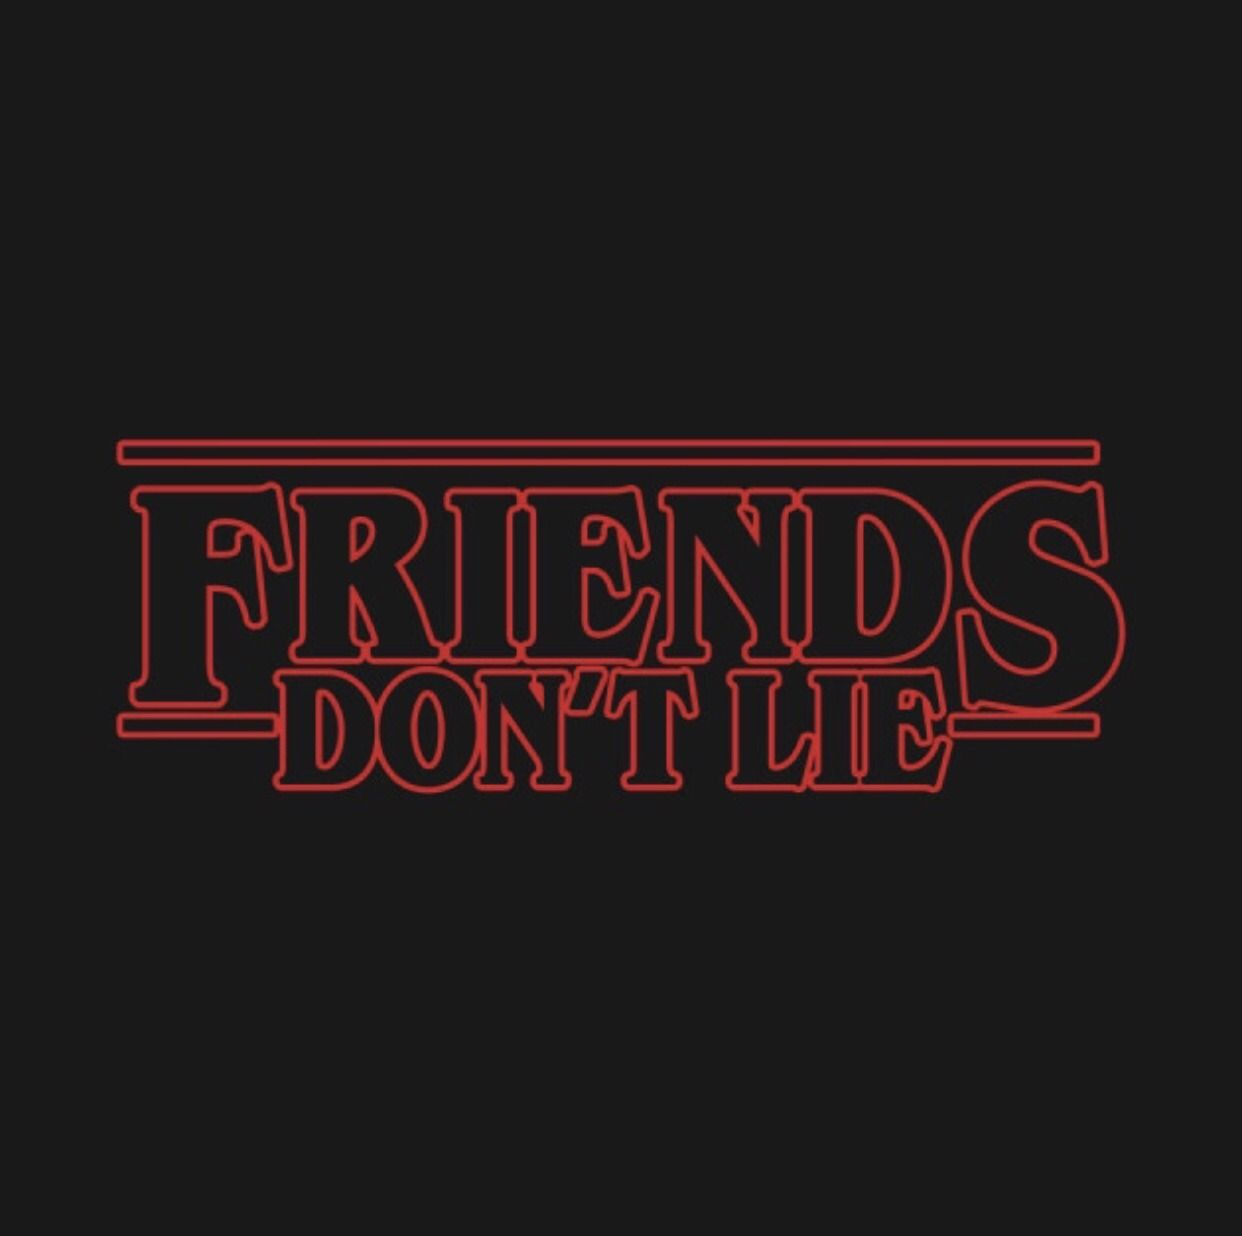 Pin By A O Monk On Text Referenzen Stranger Things Aesthetic Stranger Things Wallpaper Stranger Things Logo